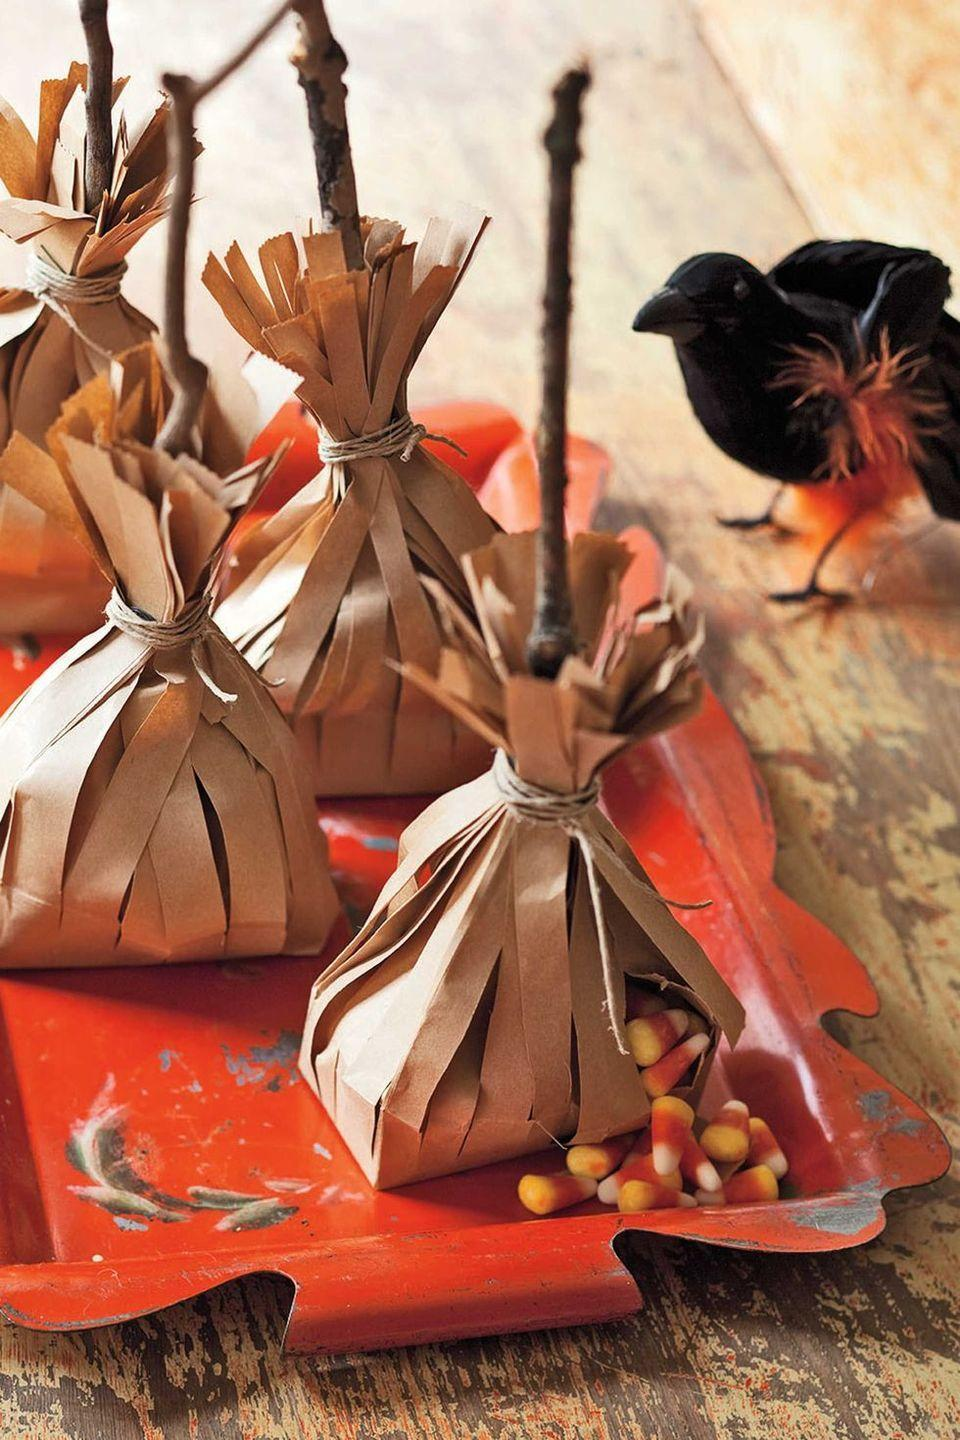 "<p>If you're planning a Halloween party, convince your kids to pitch in by making these easy paper treat bags. But first, ask them to head outside to collect sticks in your yard to create the witch's broom<em>sticks</em> (get it?). </p><p><em><a href=""https://www.womansday.com/home/crafts-projects/how-to/a8649/halloween-decoration-broom-candy-bags-how-to-110915/"" rel=""nofollow noopener"" target=""_blank"" data-ylk=""slk:Get the tutorial at Woman's Day »"" class=""link rapid-noclick-resp"">Get the tutorial at Woman's Day »</a></em></p>"